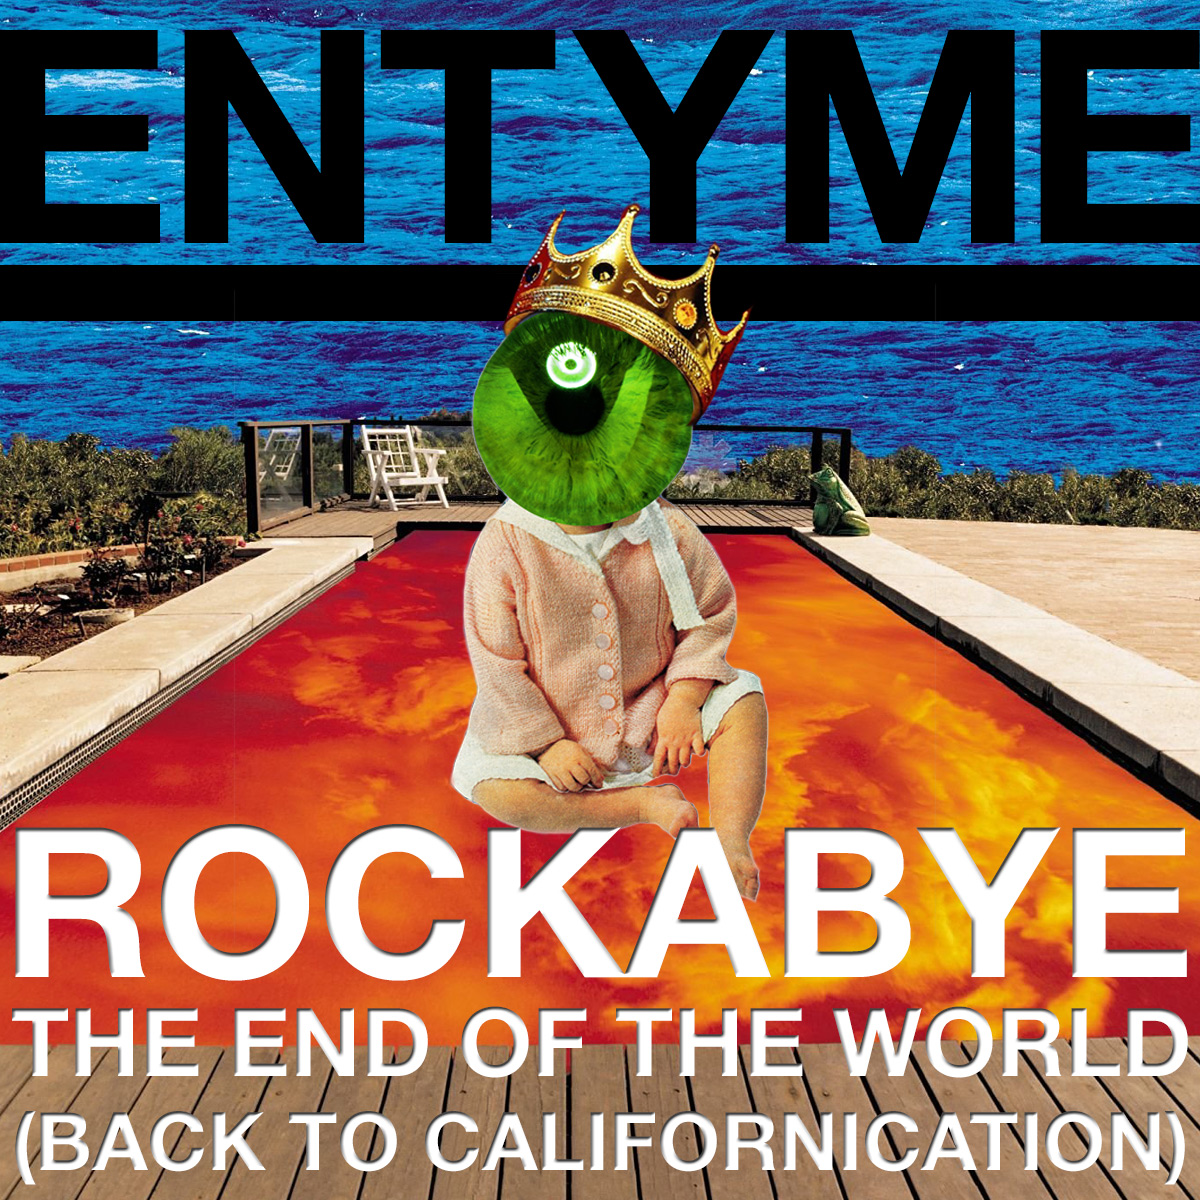 Rockabye The End of The World (Back To Californication)